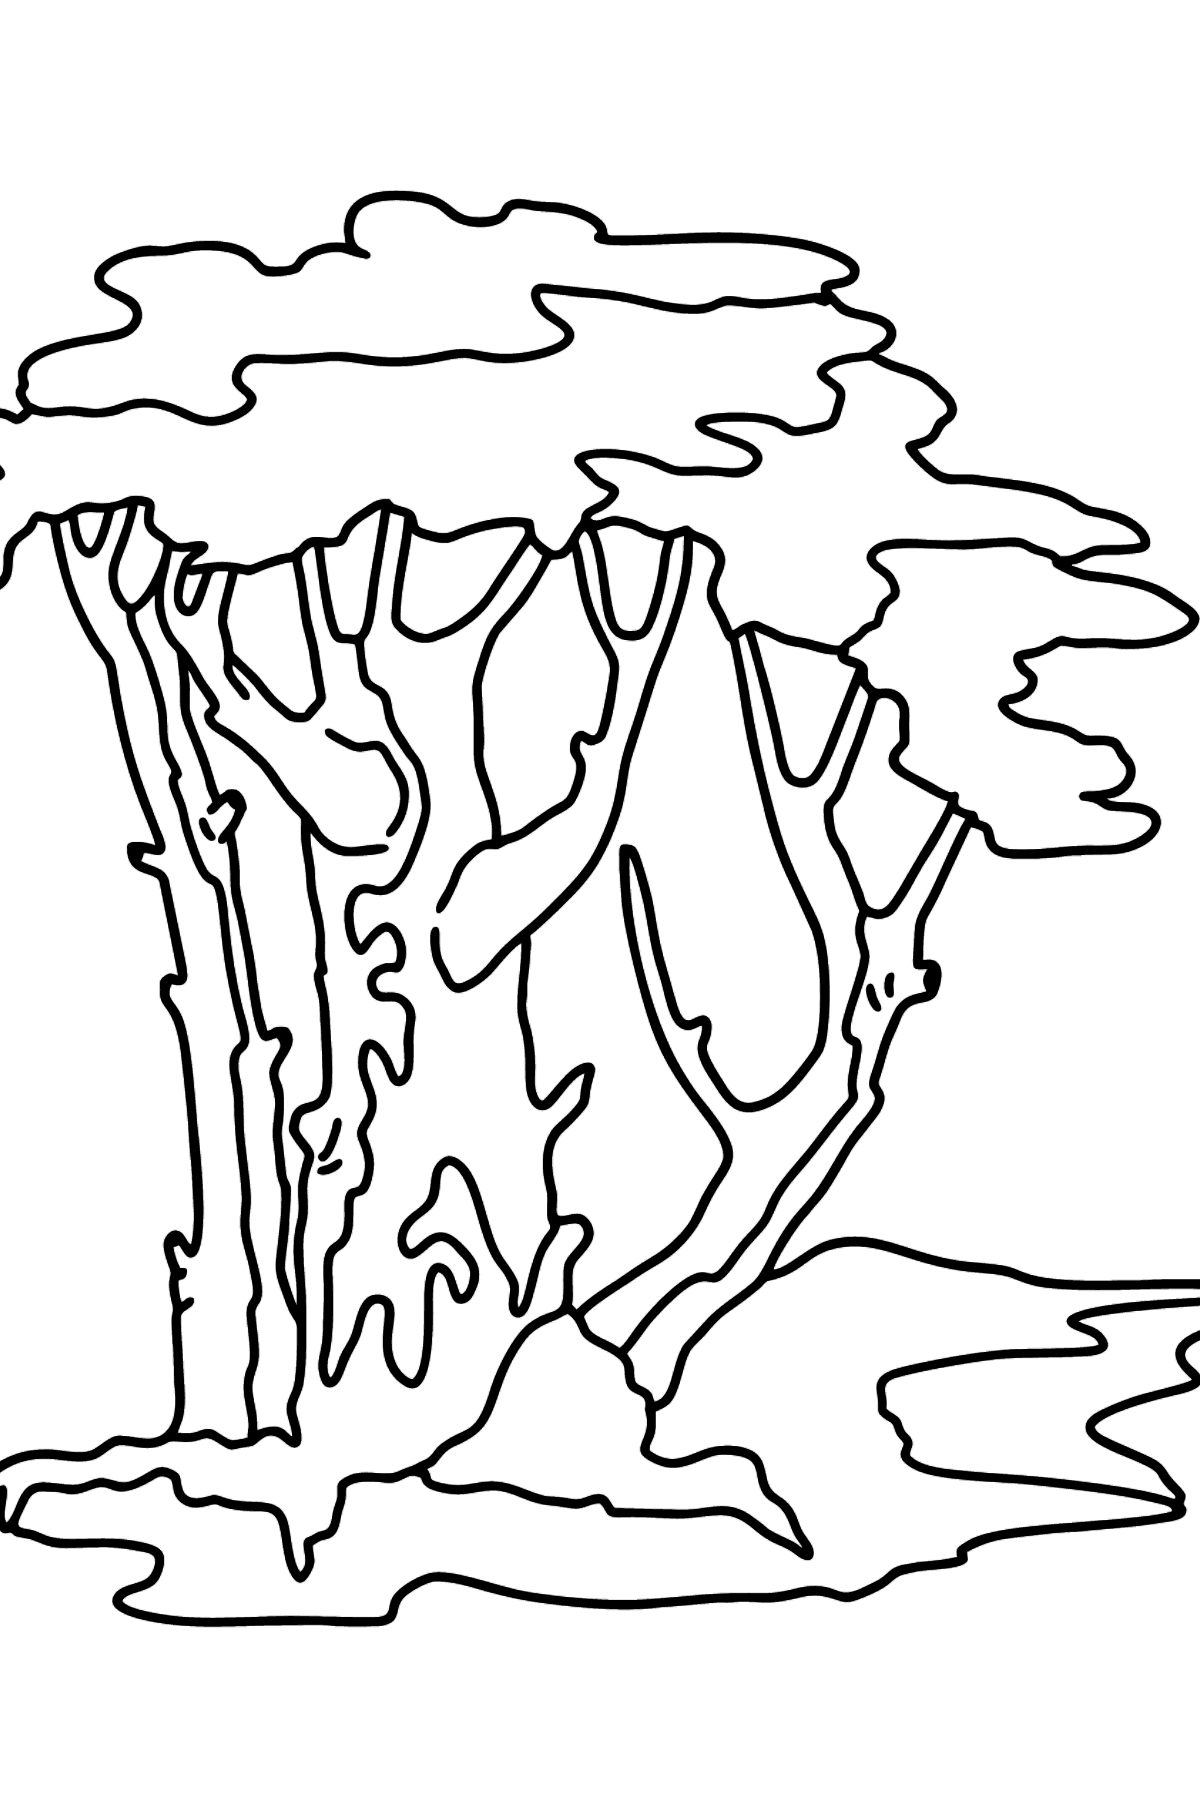 Pines coloring page - Difficult - Coloring Pages for Kids